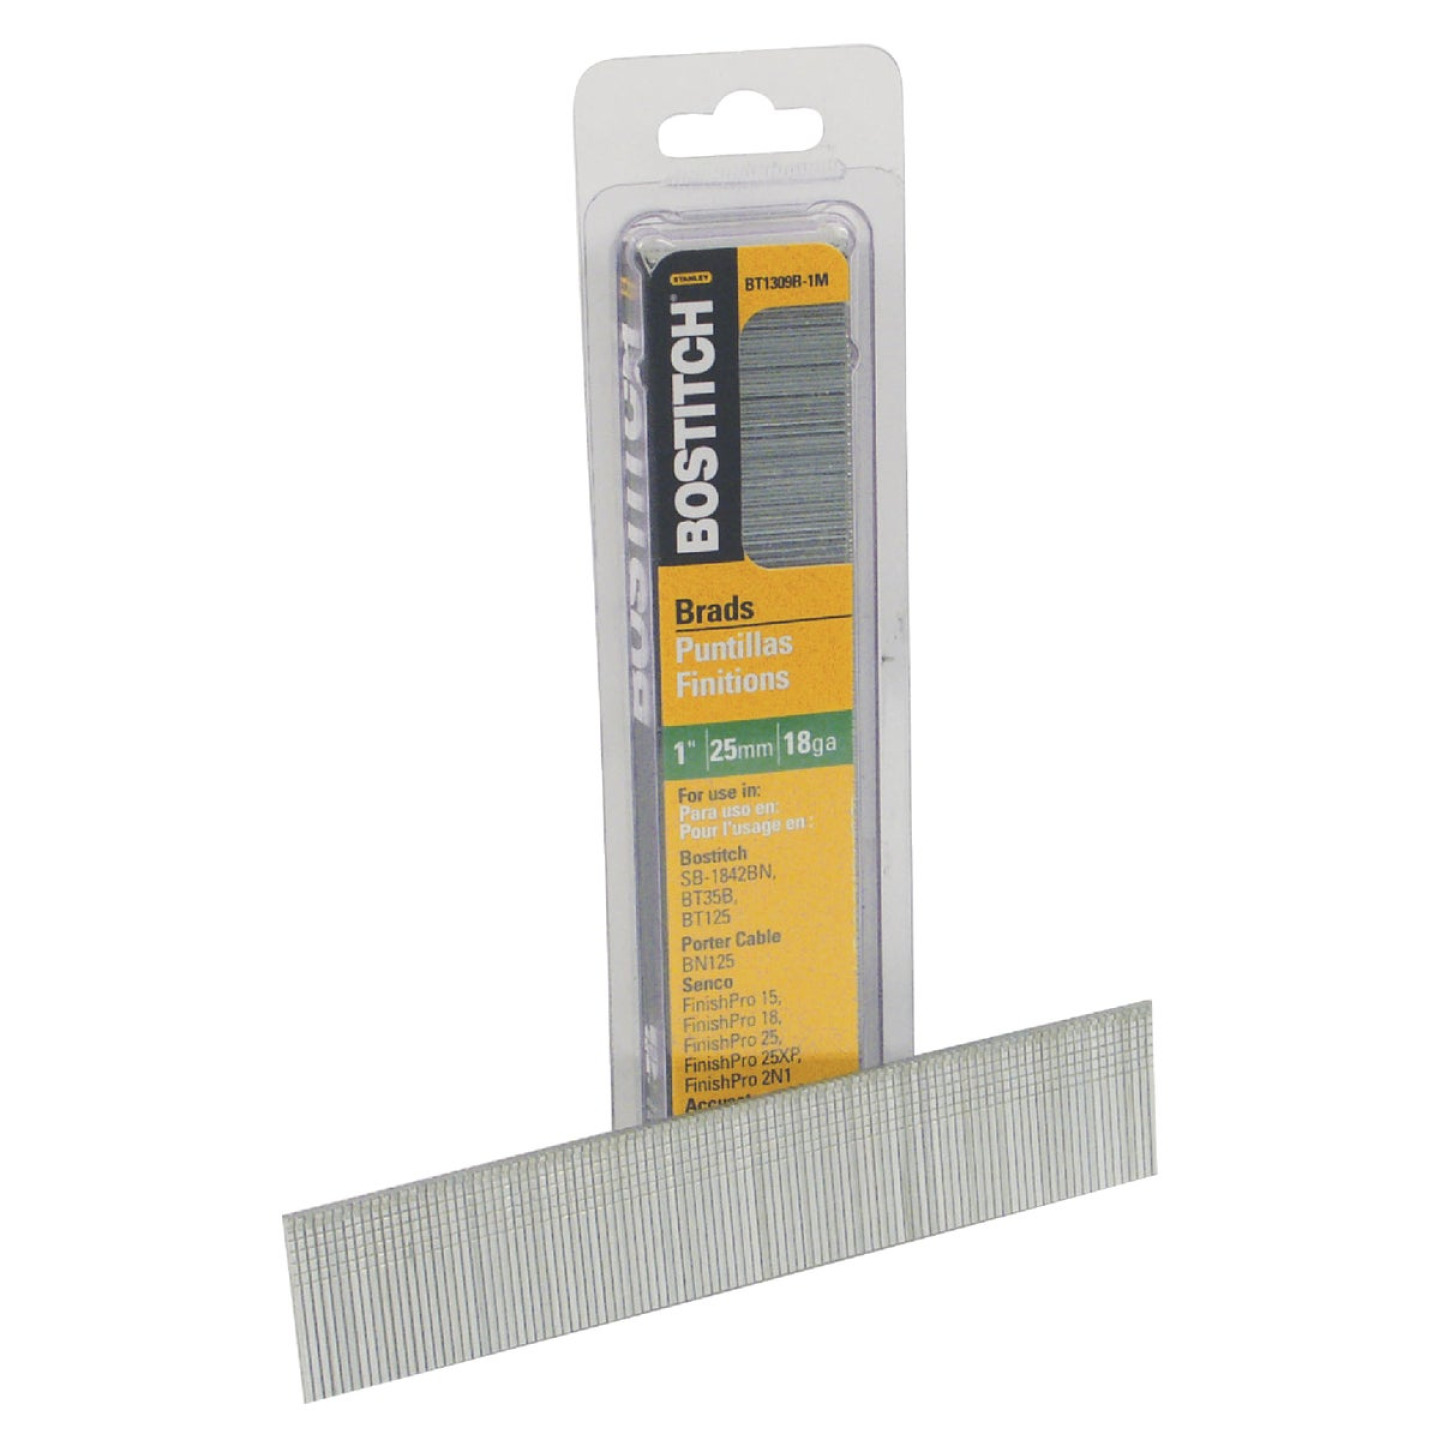 Bostitch 18-Gauge Coated Brad Nail, 1 In. (3000 Ct.) Image 1